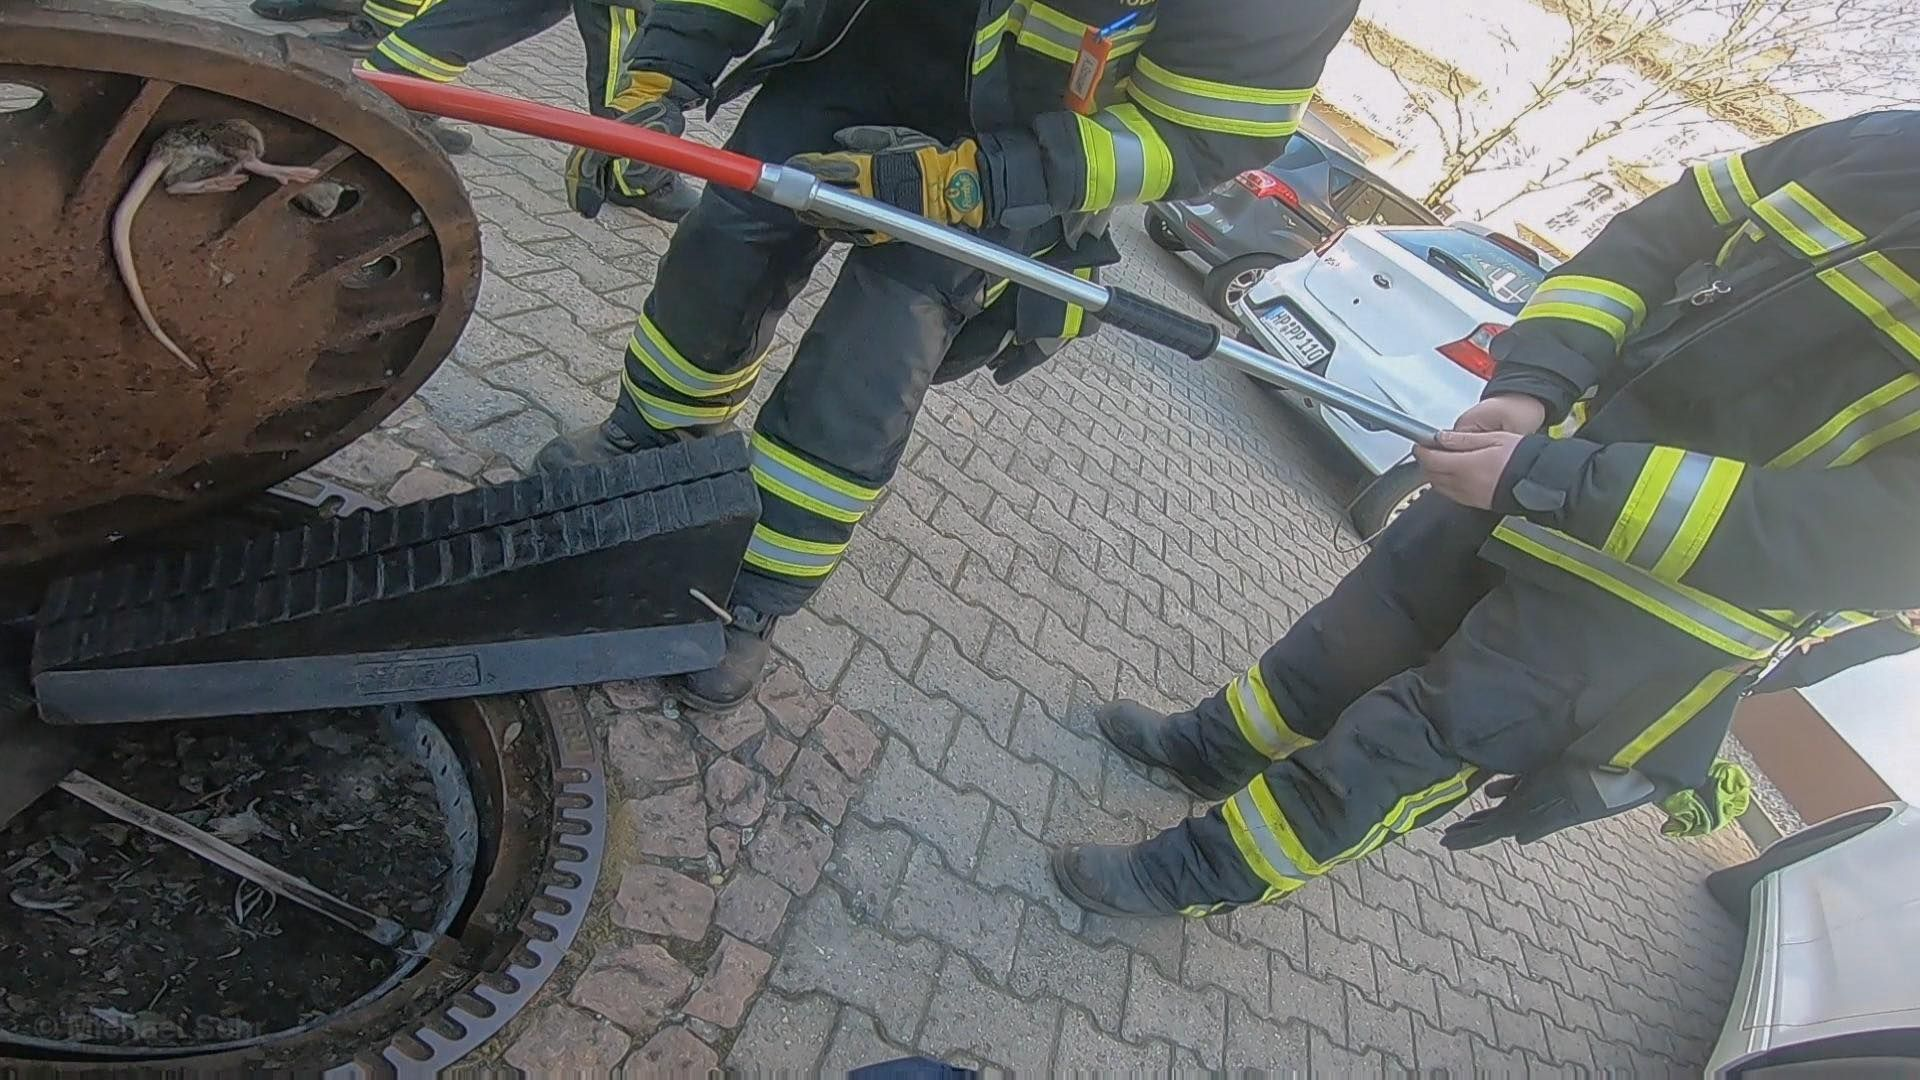 Firefighters helping fat rat stuck in manhole in Germany